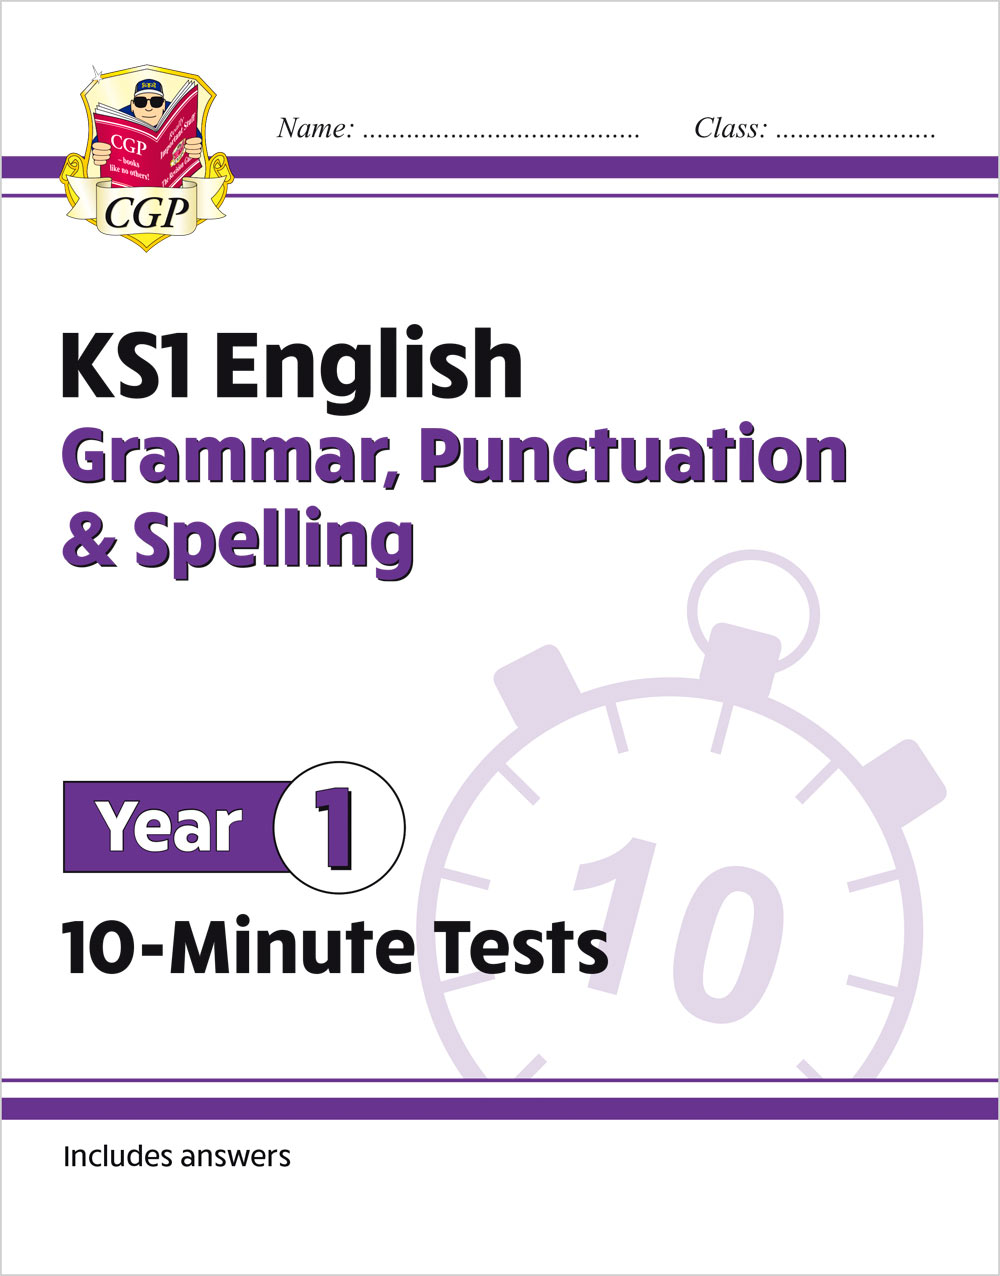 E1GXP11 - New KS1 English 10-Minute Tests: Grammar, Punctuation & Spelling - Year 1